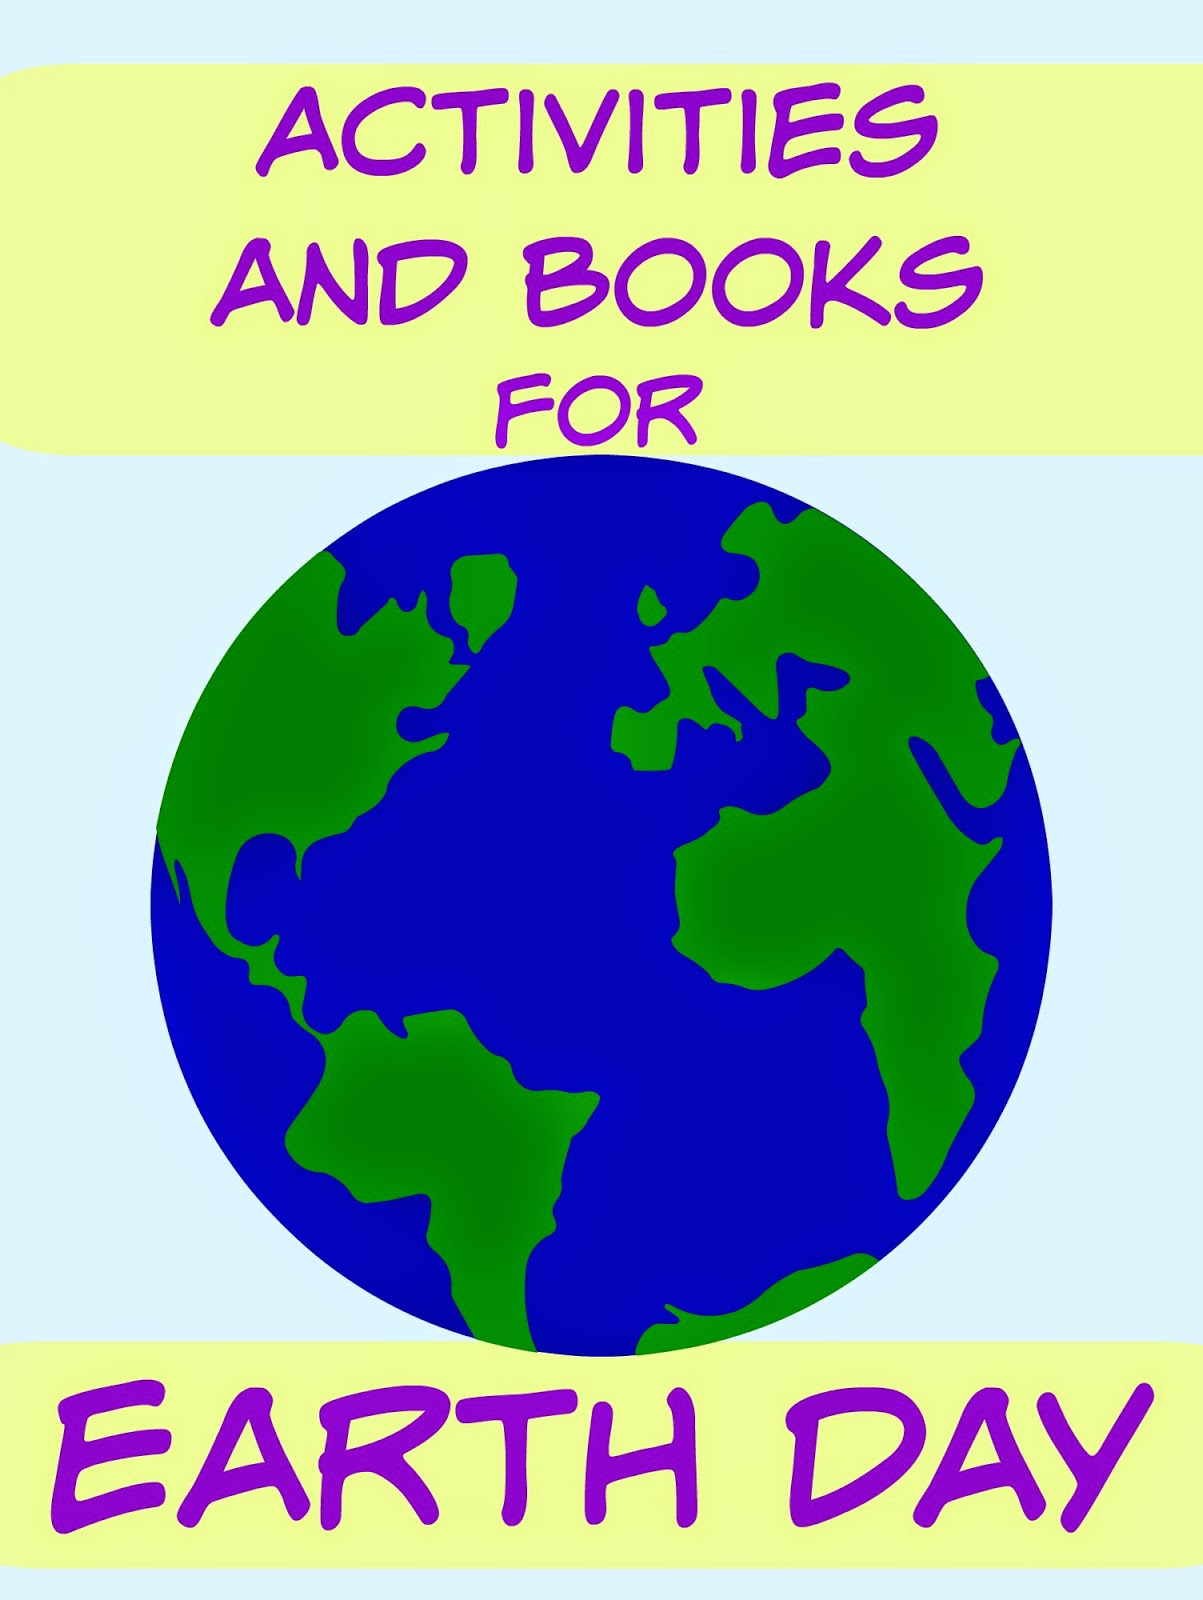 Earth Day Activities and Books at Mom\'s Library - Life with Moore Babies